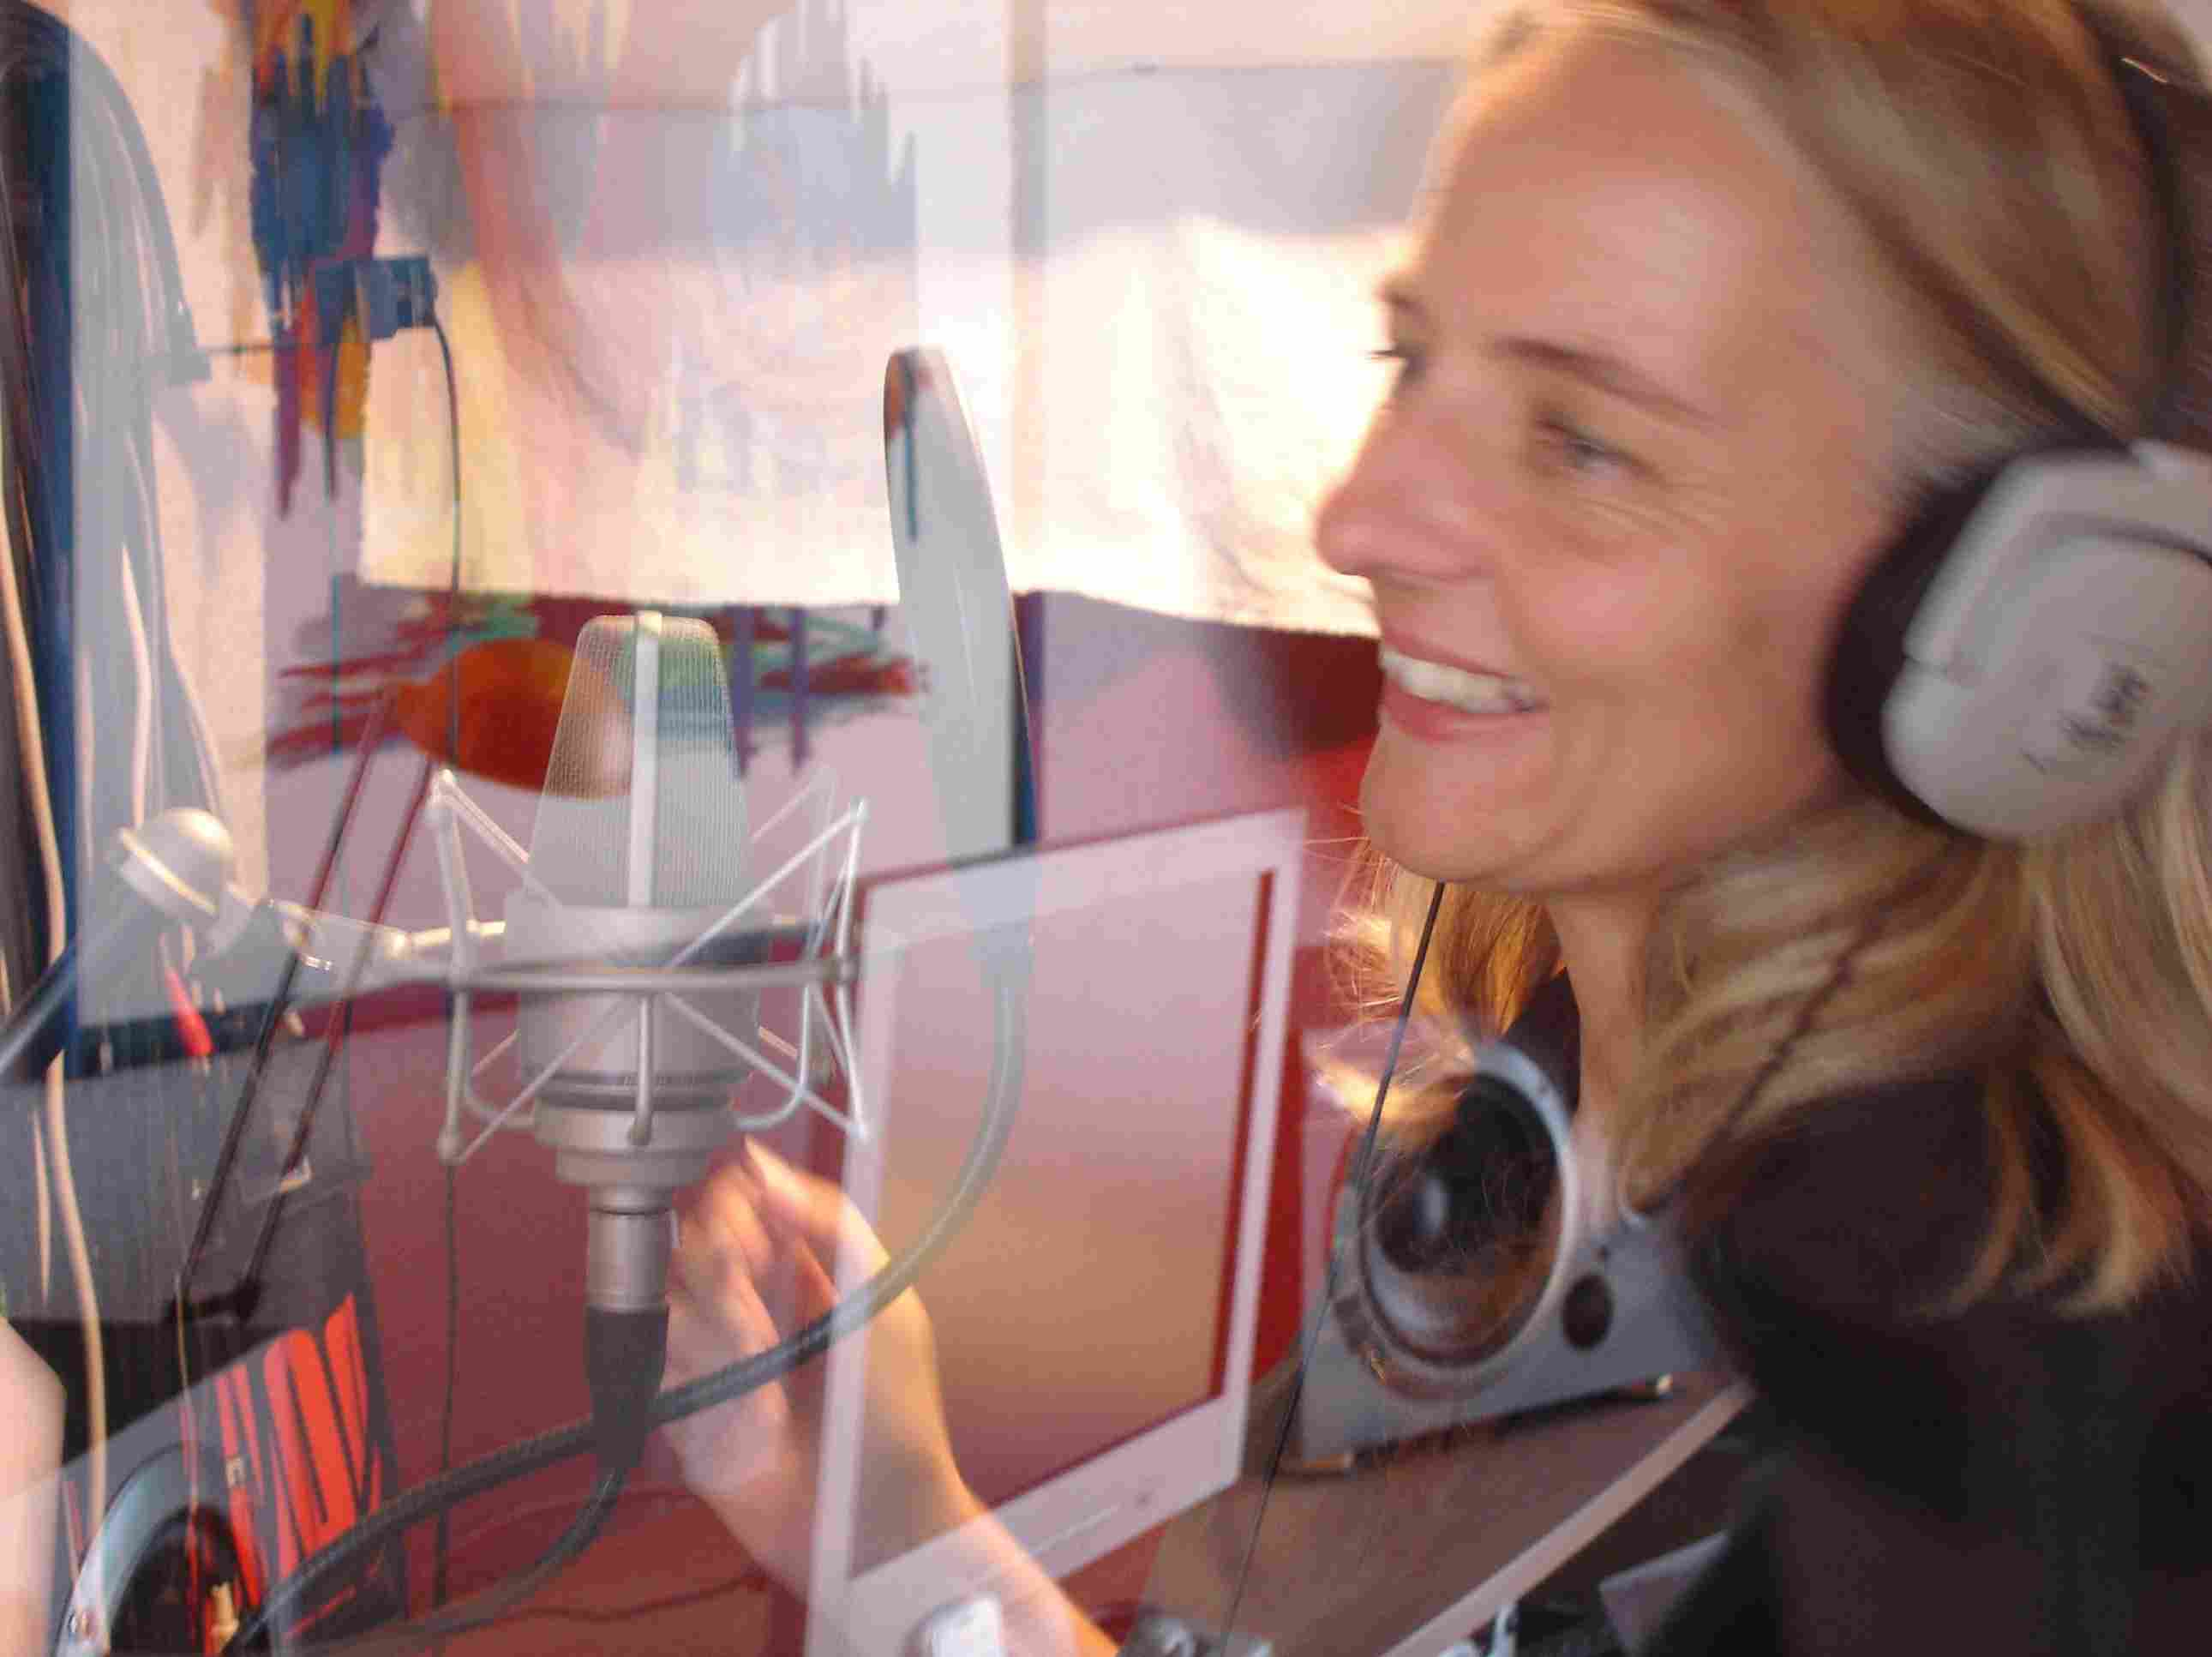 German voice over, German voice talent; German voice overs